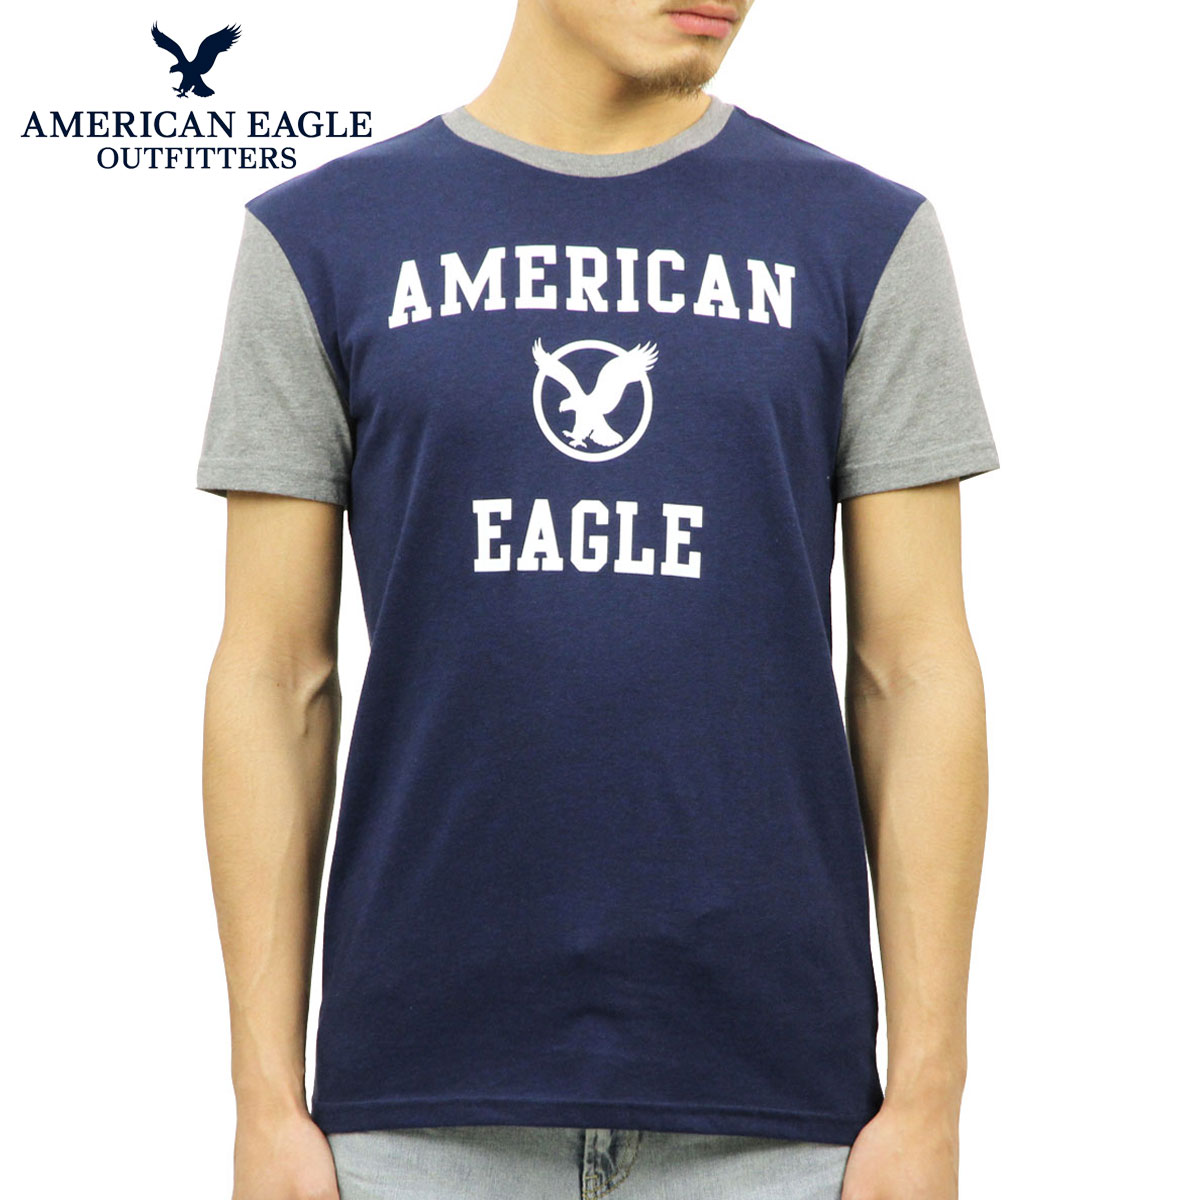 09f5d7d80 American eagle AMERICAN EAGLE regular article men crew neck short sleeves T-shirt  AE GRAPHIC ...